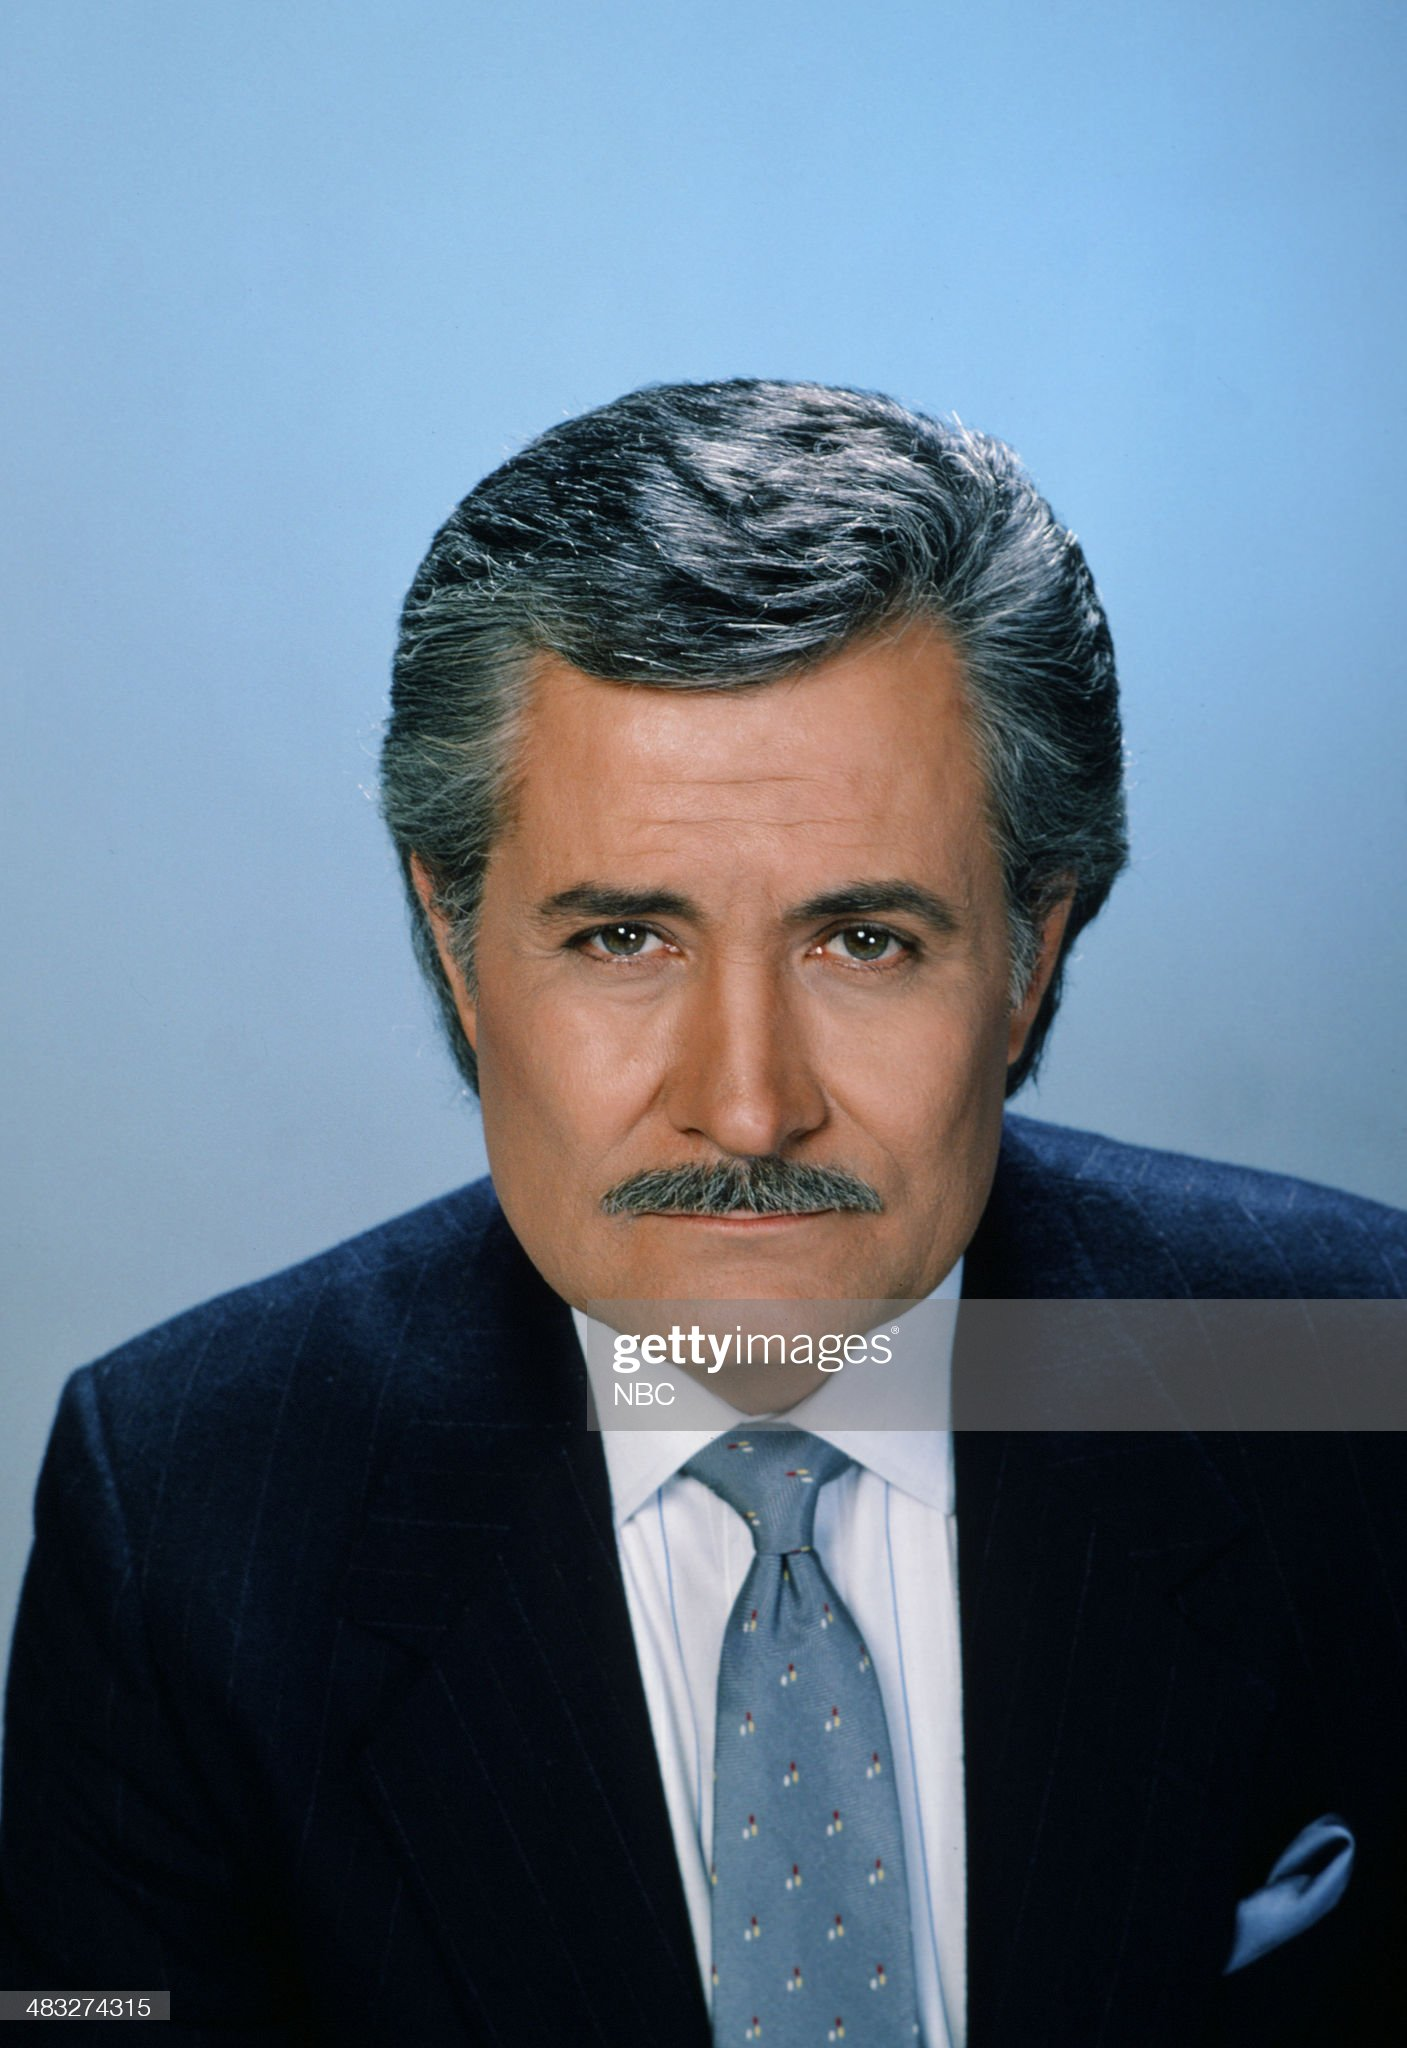 pictured-john-aniston-as-victor-kiriakis-picture-id483274315